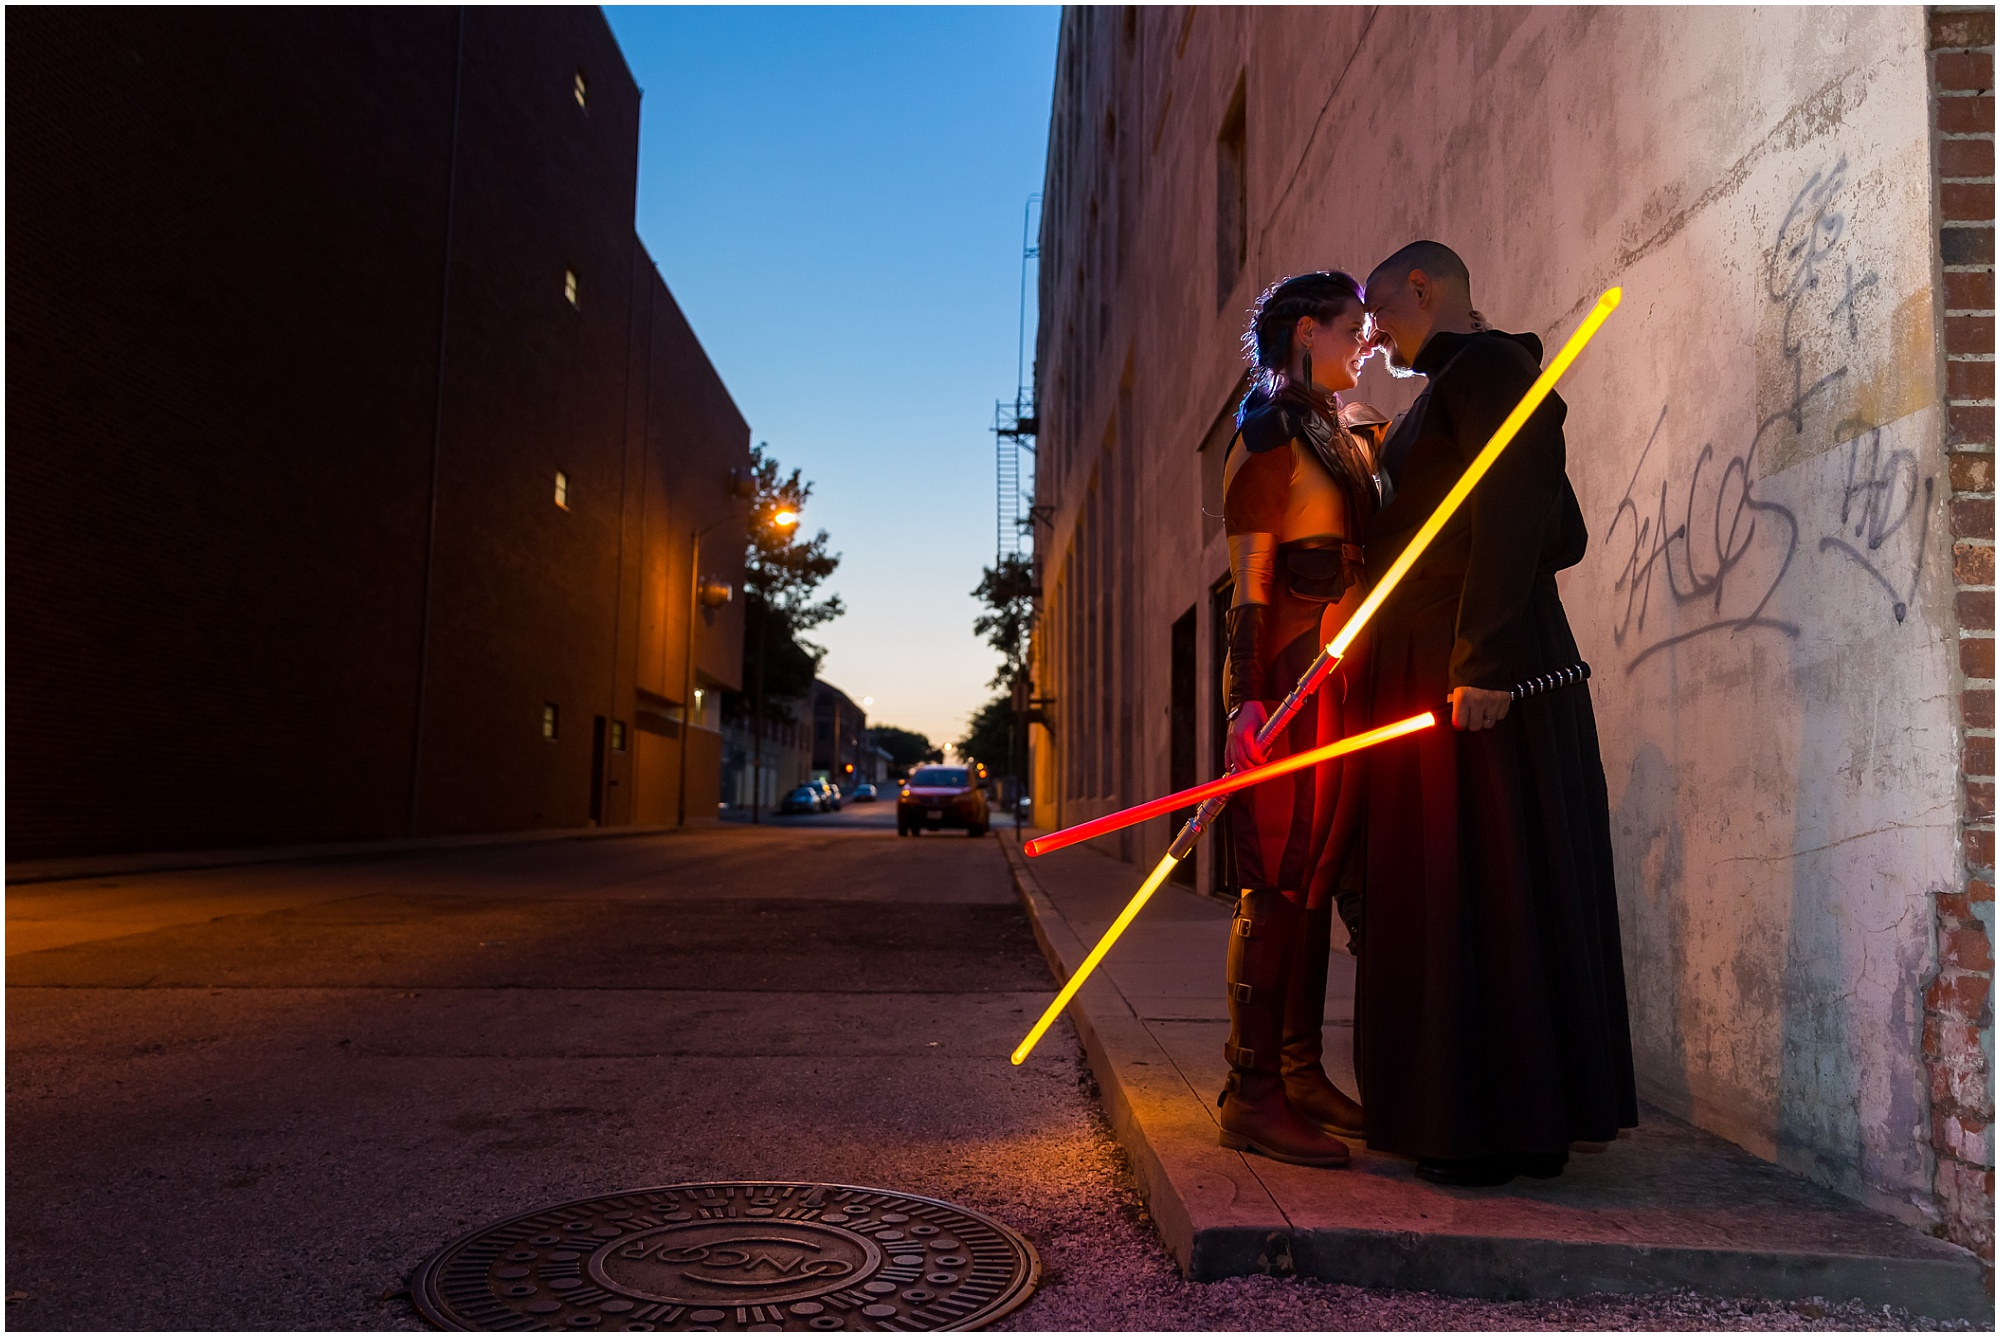 A bride dressed as a Jedi Knight and her groom, dressed as a Sith Lord, embrace holding lightsabers down a darkened alley in downtown Waco, Texas  - Jason & Melaina Photography - www.jasonandmelaina.com